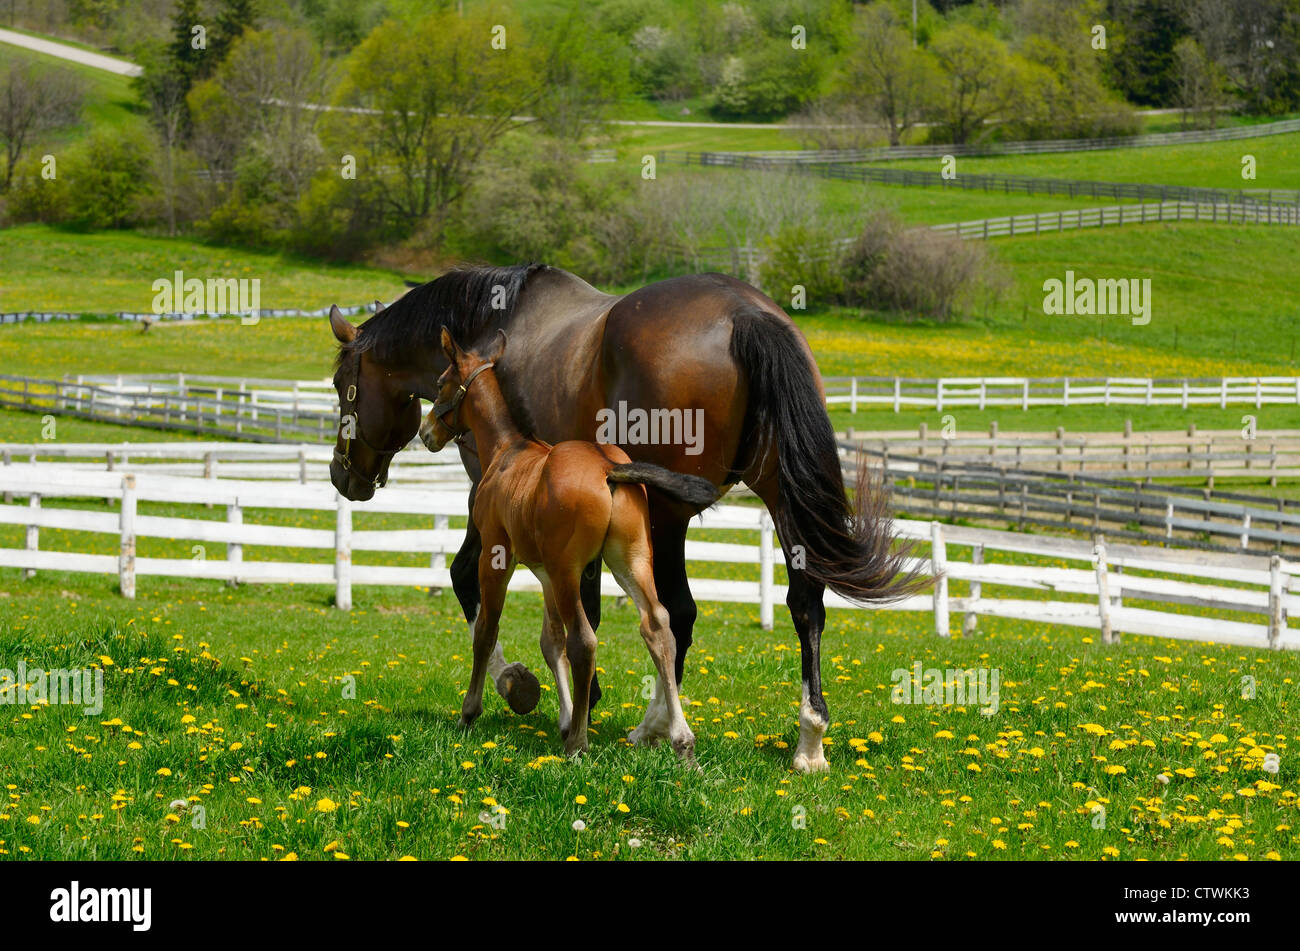 Young foal running close and touching mother horse out in a paddock in Spring Ontario Canada - Stock Image